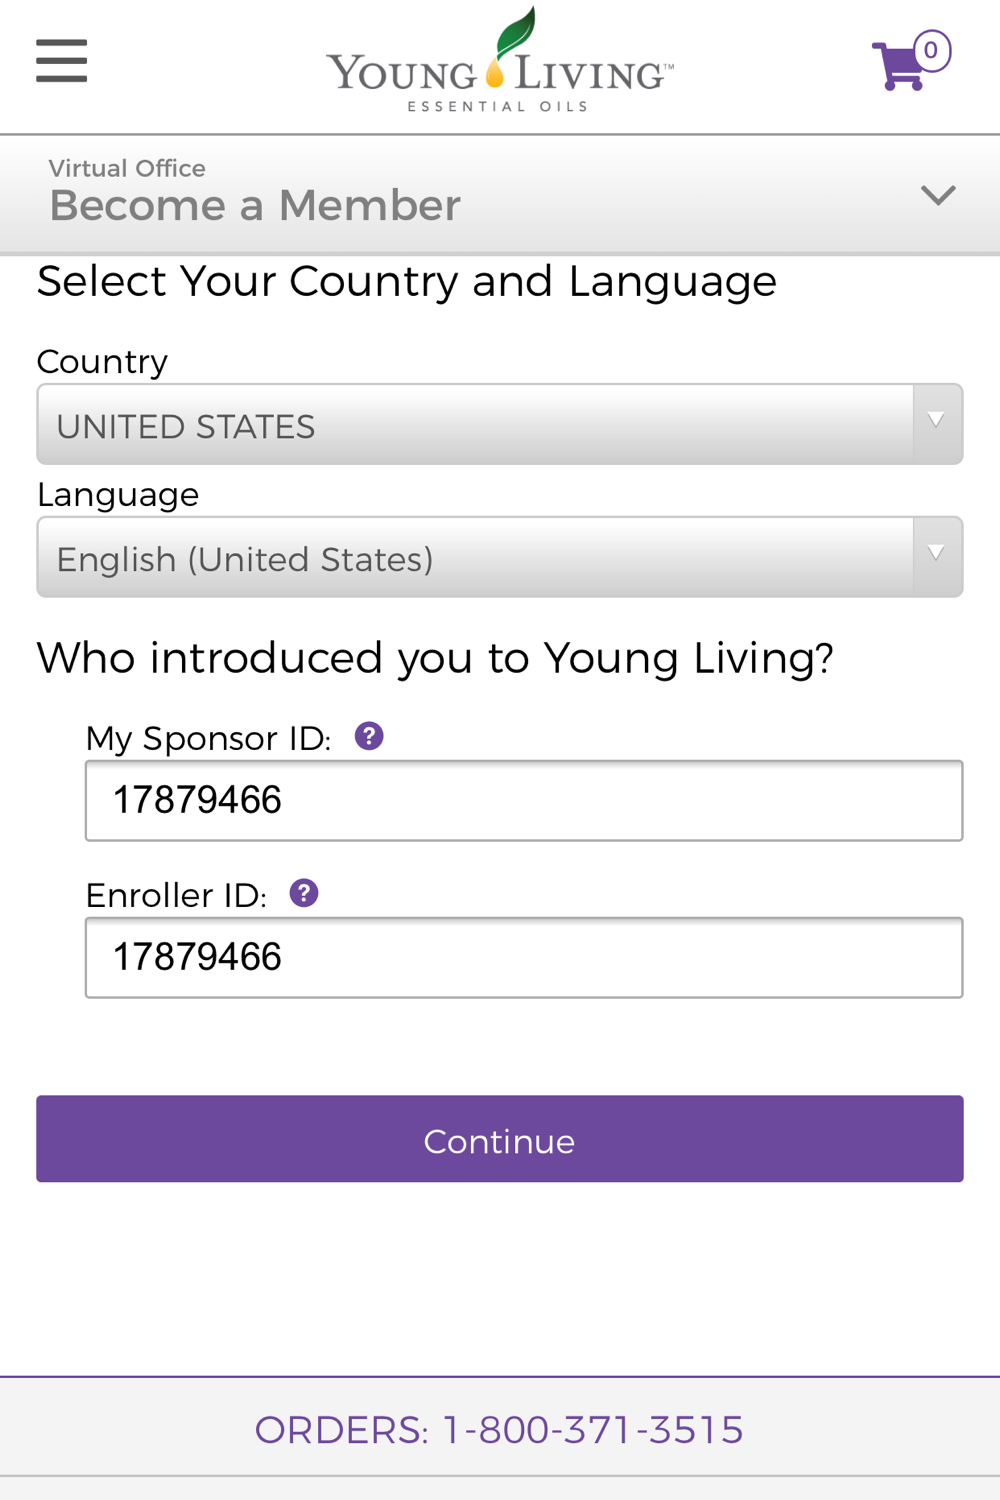 how-to-become-a-young-living-member